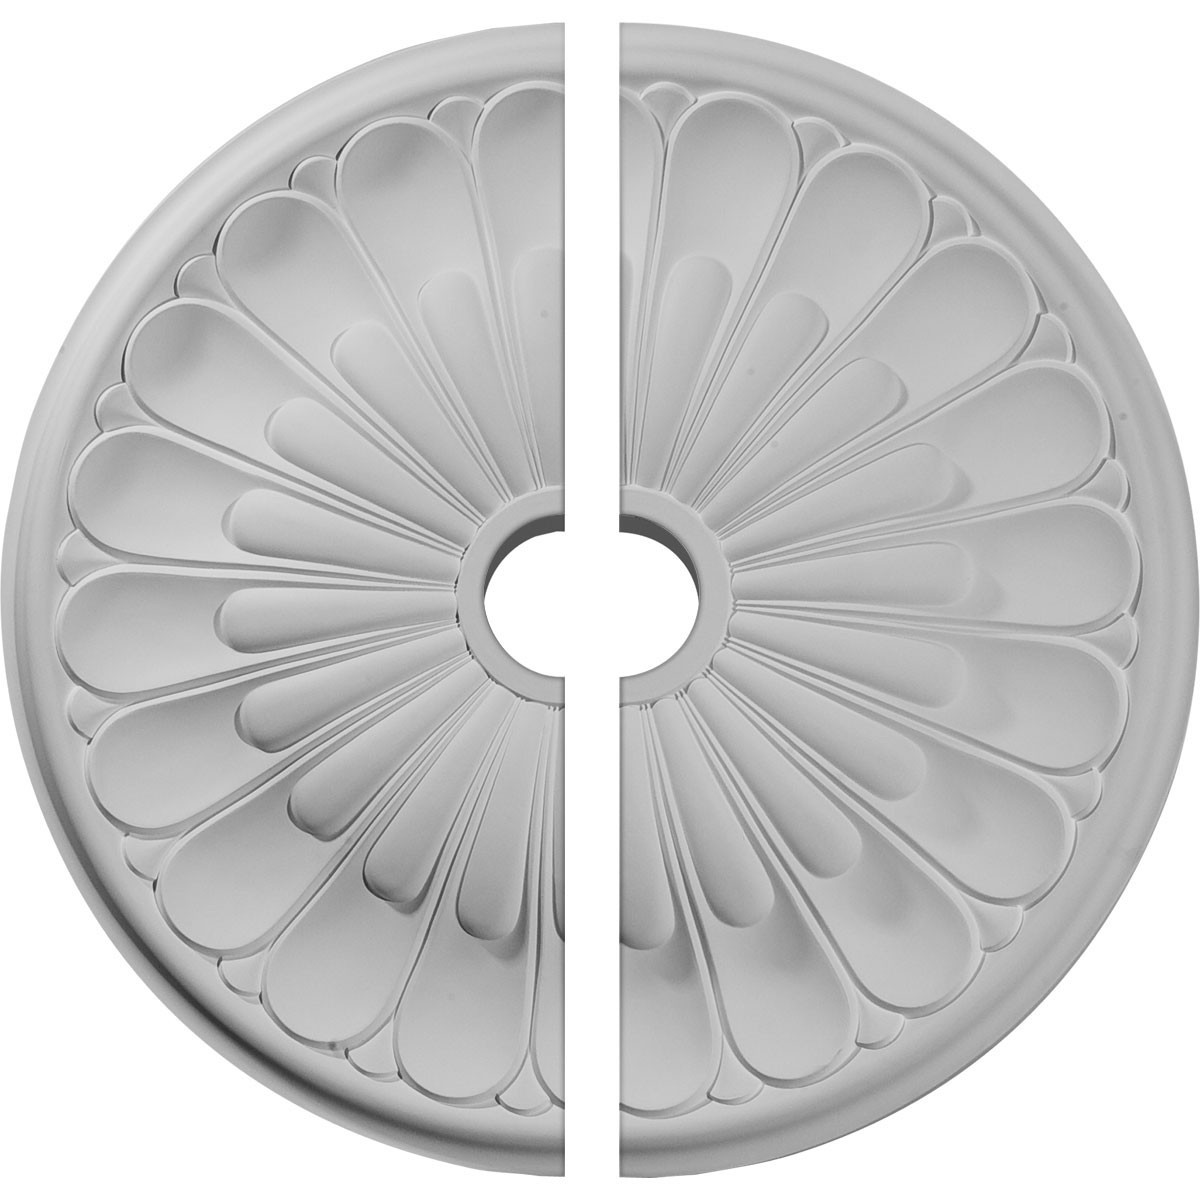 """EM-CM26EL2 - 26 3/4""""OD x 3 5/8""""ID x 1 3/8""""P Elsinore Ceiling Medallion, Two Piece (Fits Canopies up to 3 5/8"""")"""